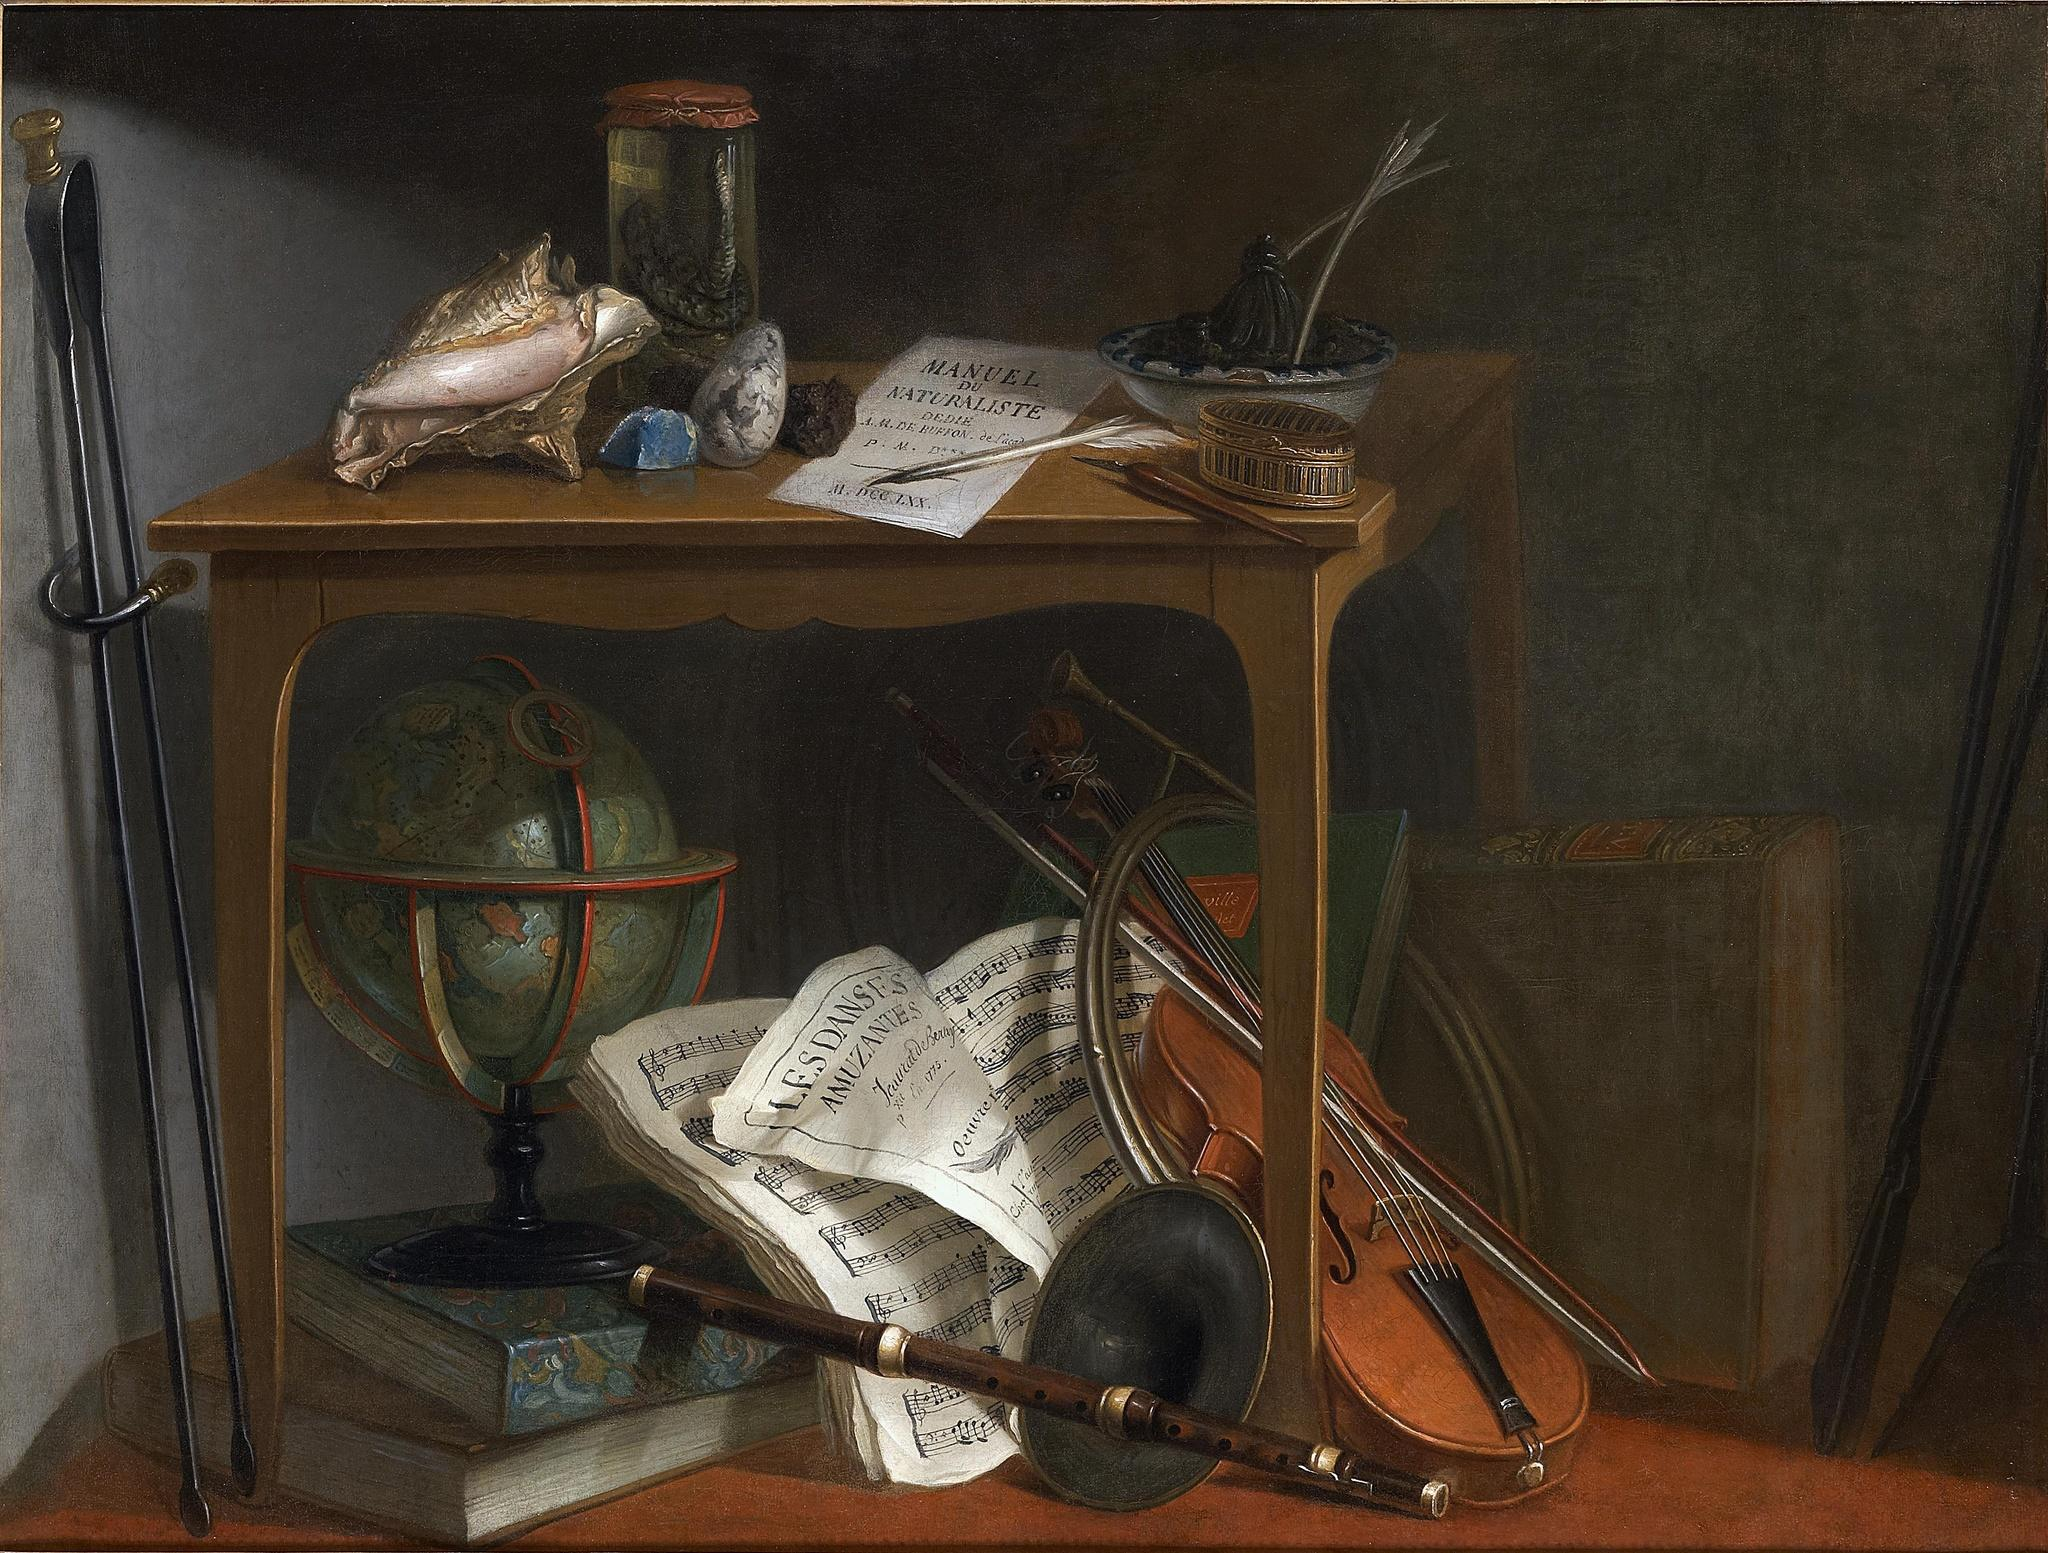 Jeaurat de Bertry, Nicolas Henry 1775 Devants-de Cheminee Naturalist Manual And Objects Resting On A Table coll privee